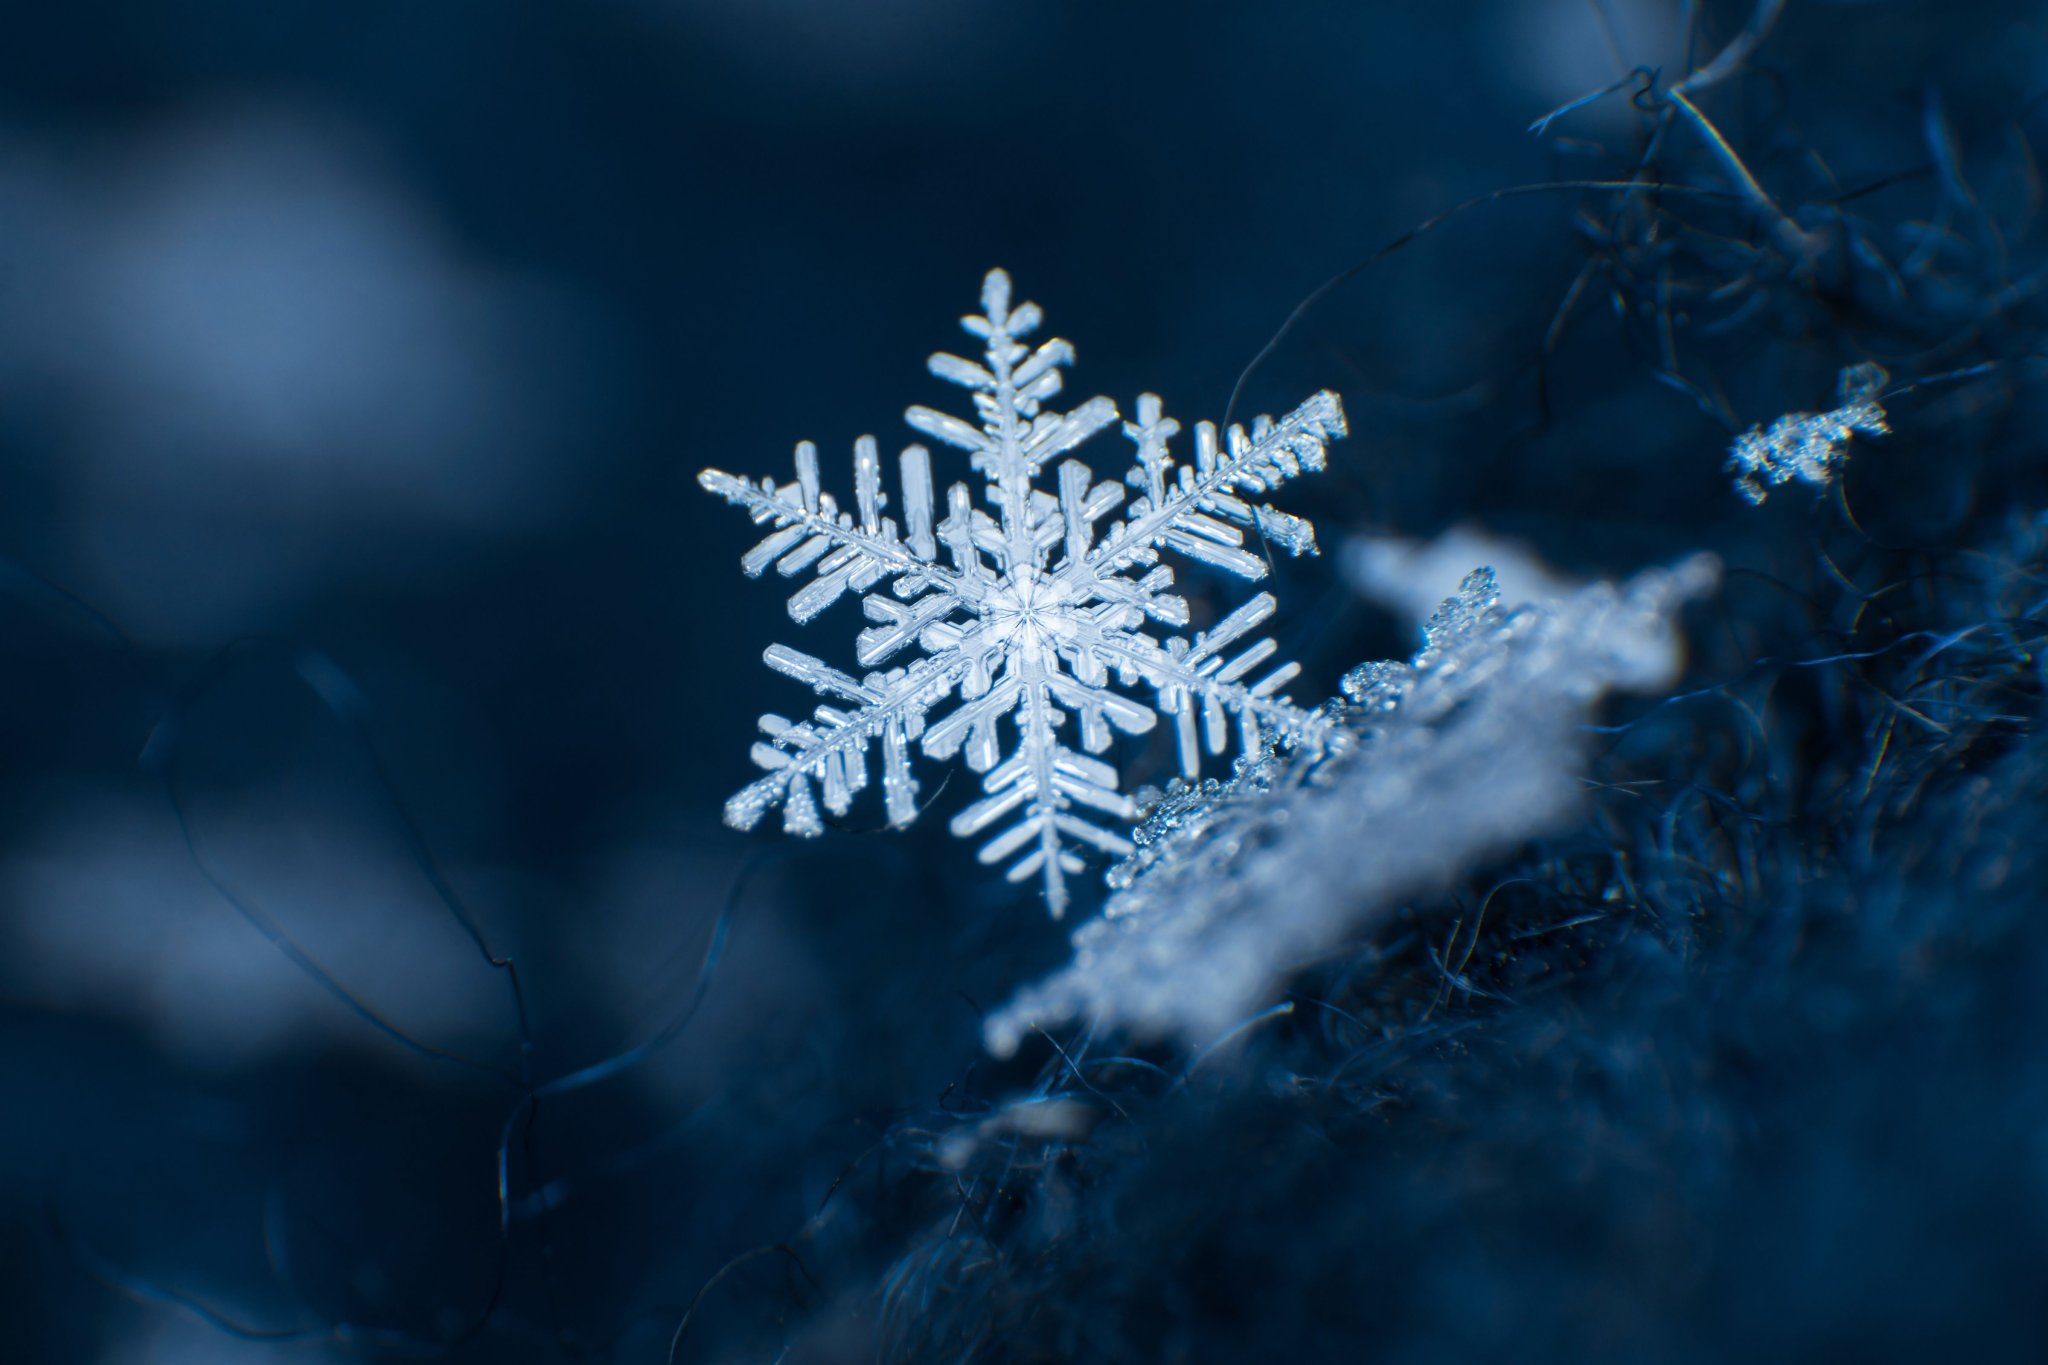 13 perfect snowflakes captured in photos